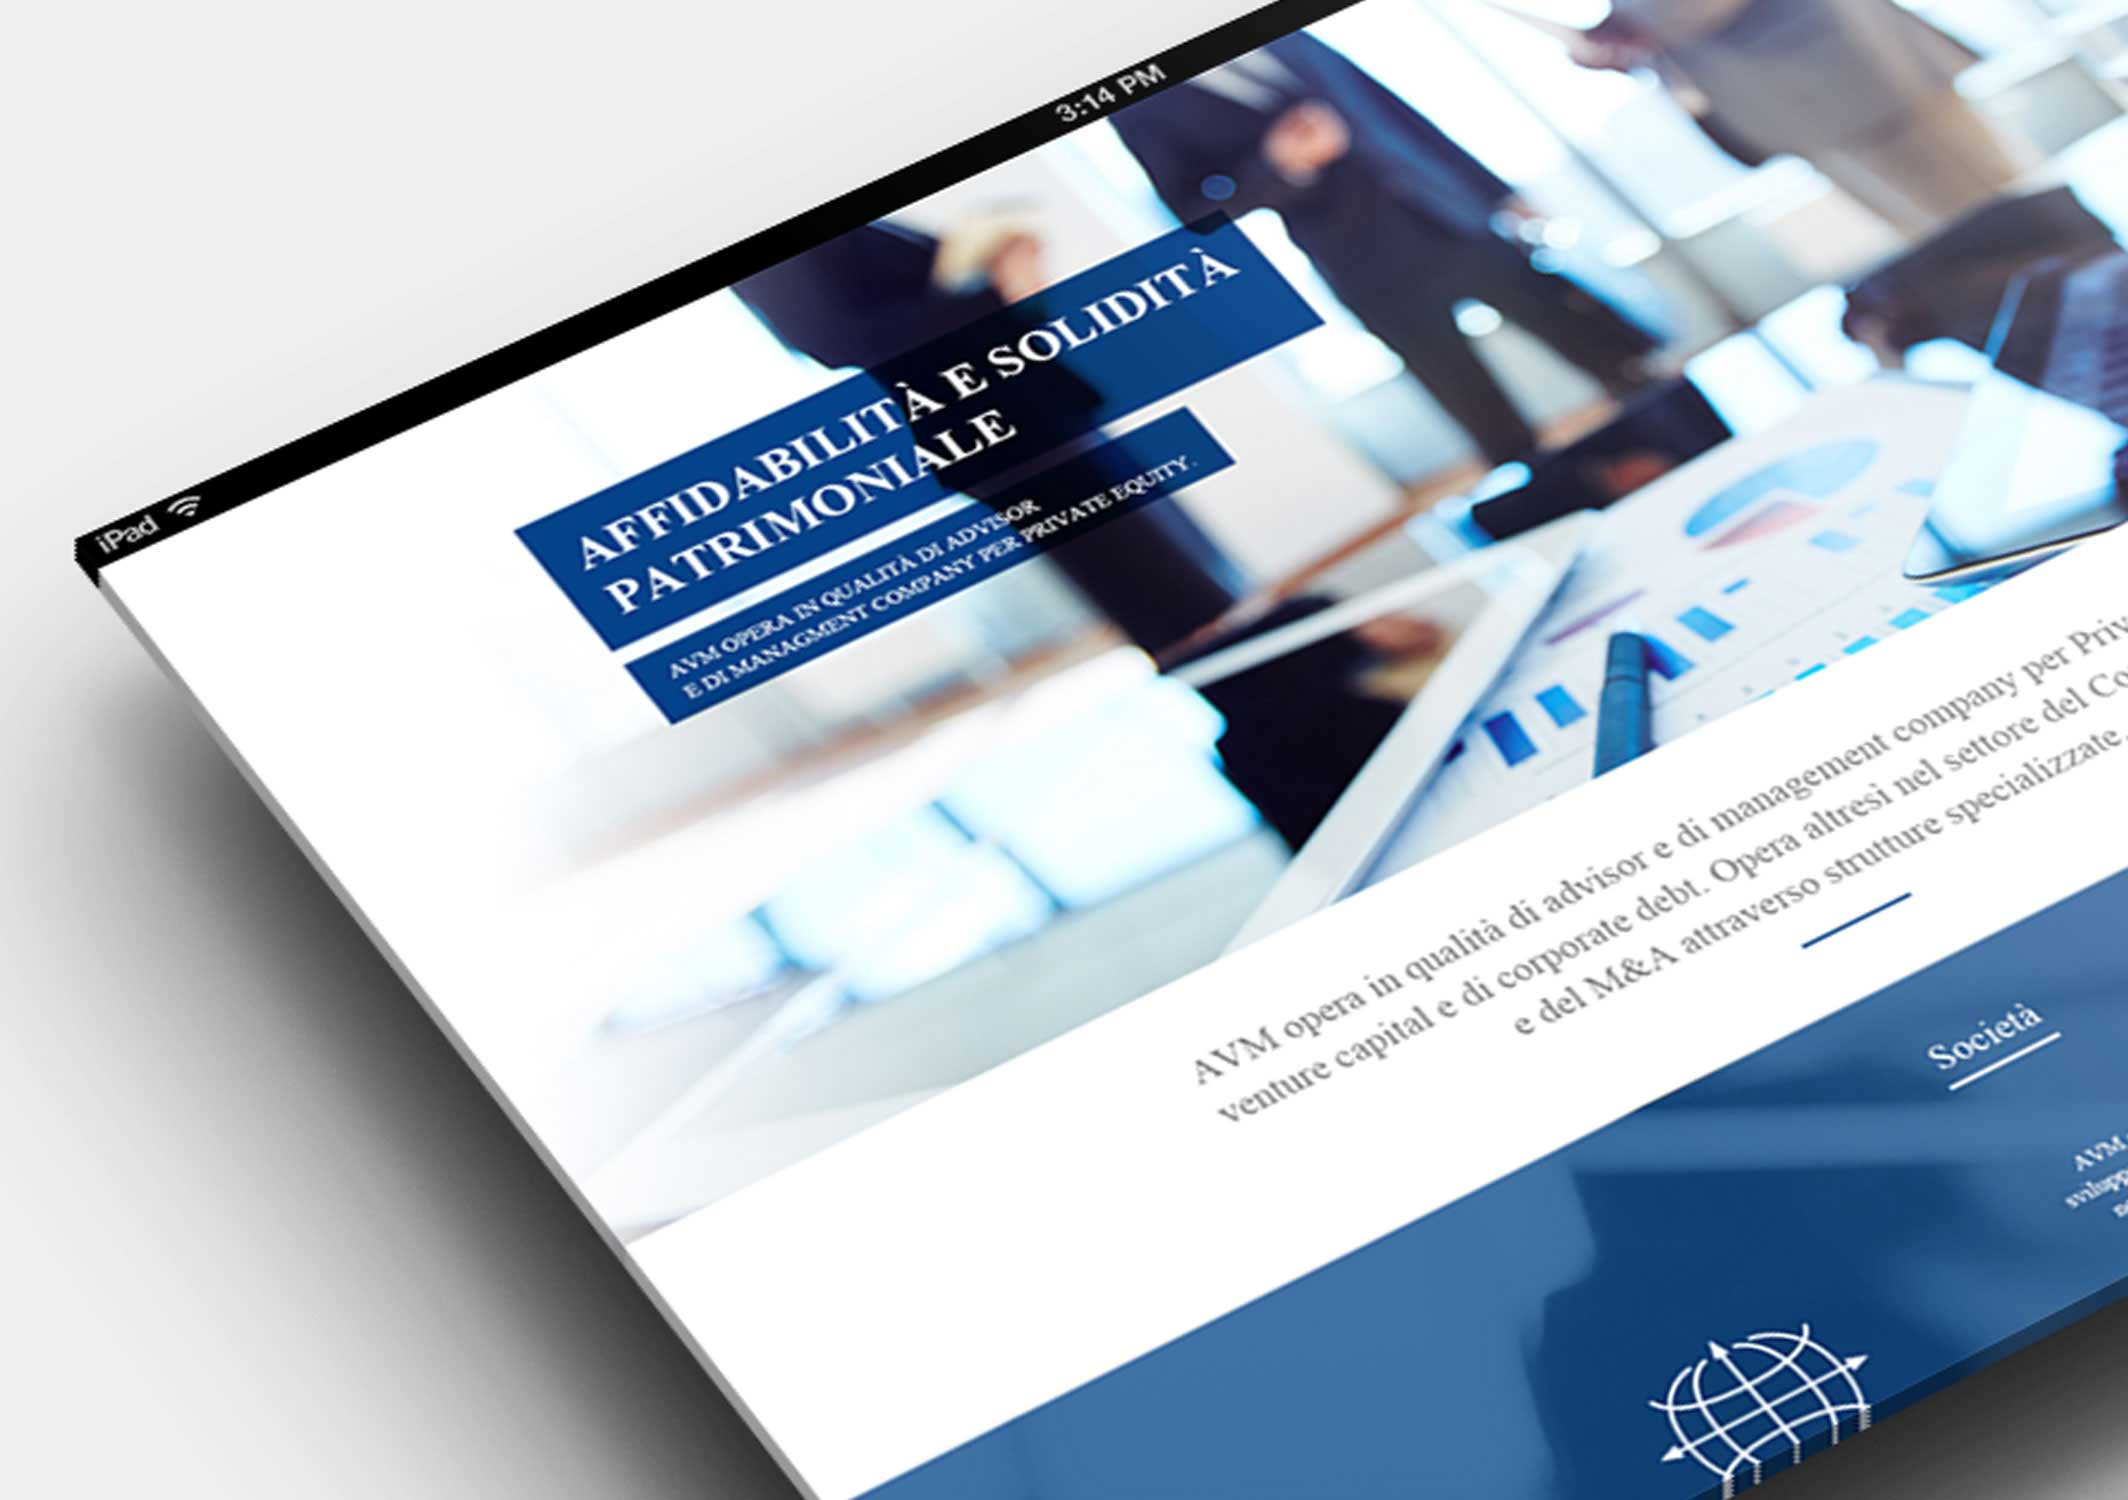 Develop of the new responsive website for AVM Associati Spa and AVM Gentioni